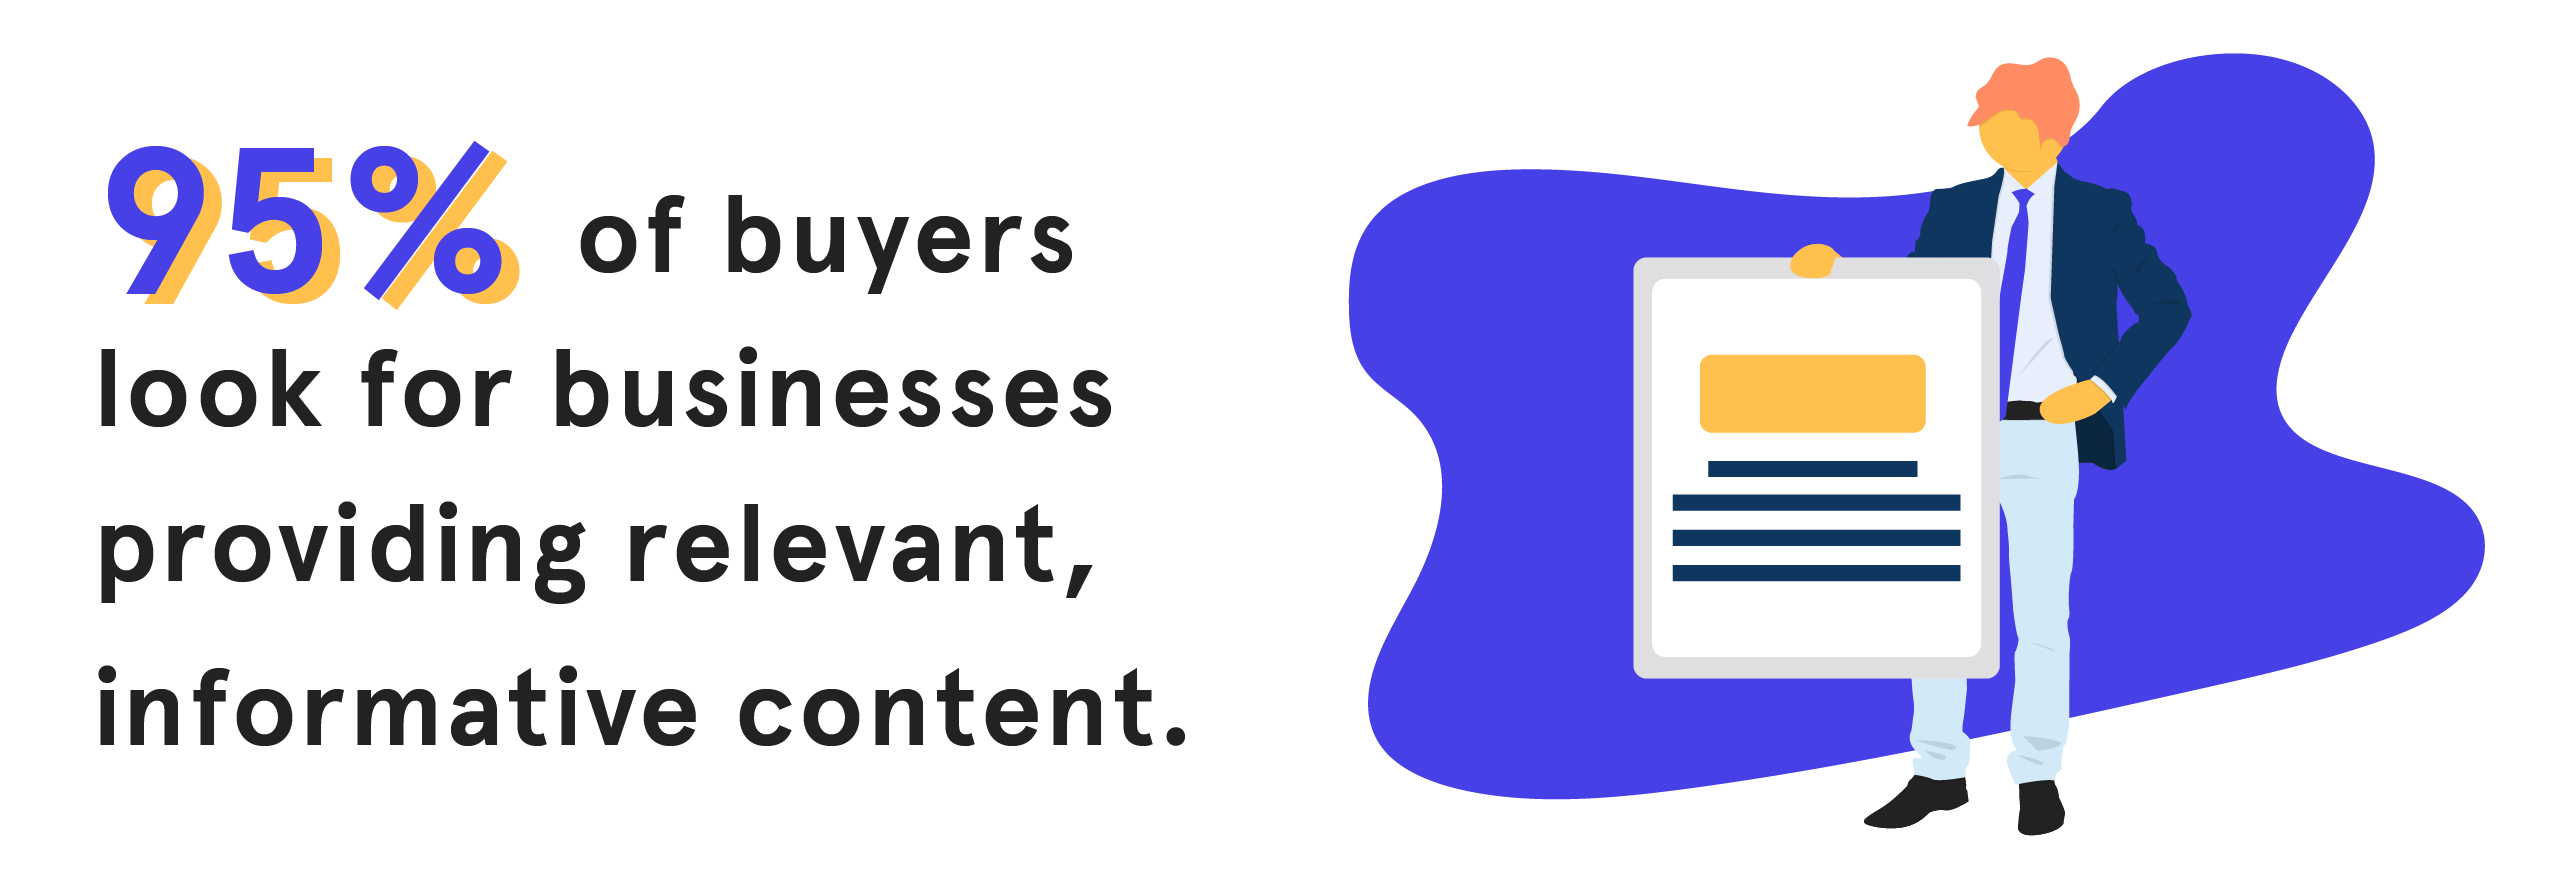 STATS - 05 -  95 percent of buyers look for businesses providing relevant, informative content-01-01